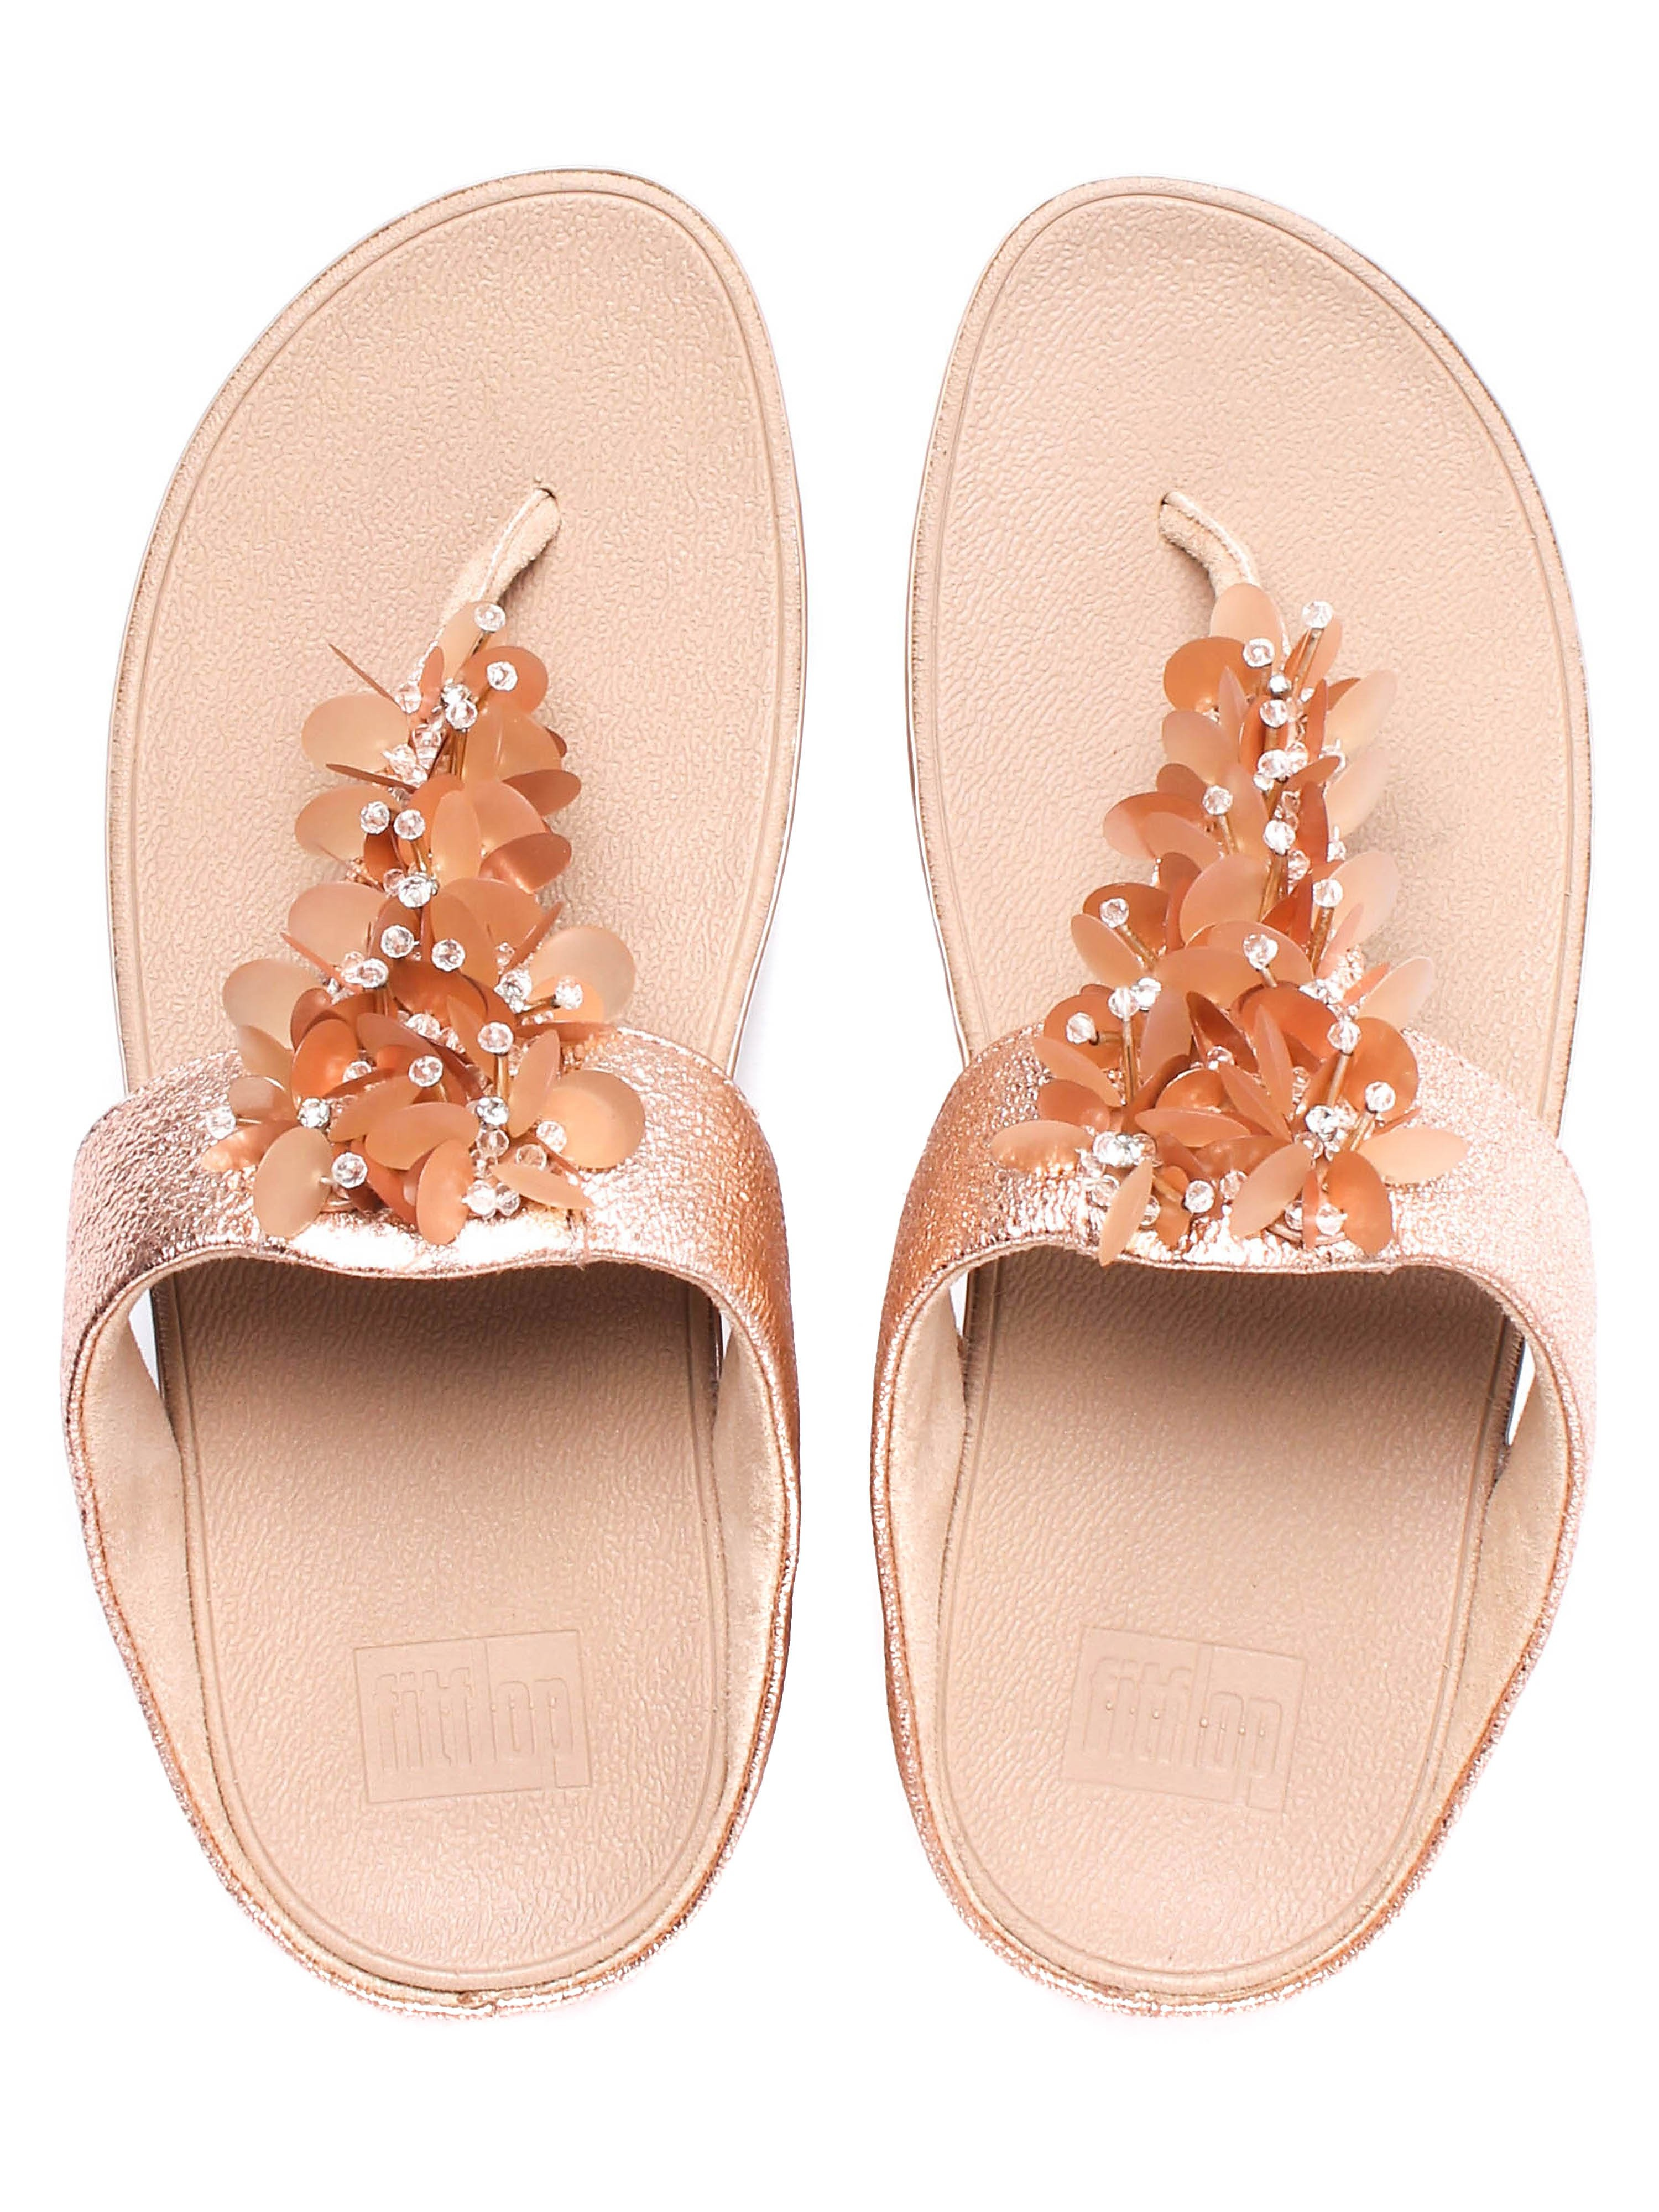 FitFlop Women's Boogaloo Toe-Post Sandals - Rose Gold